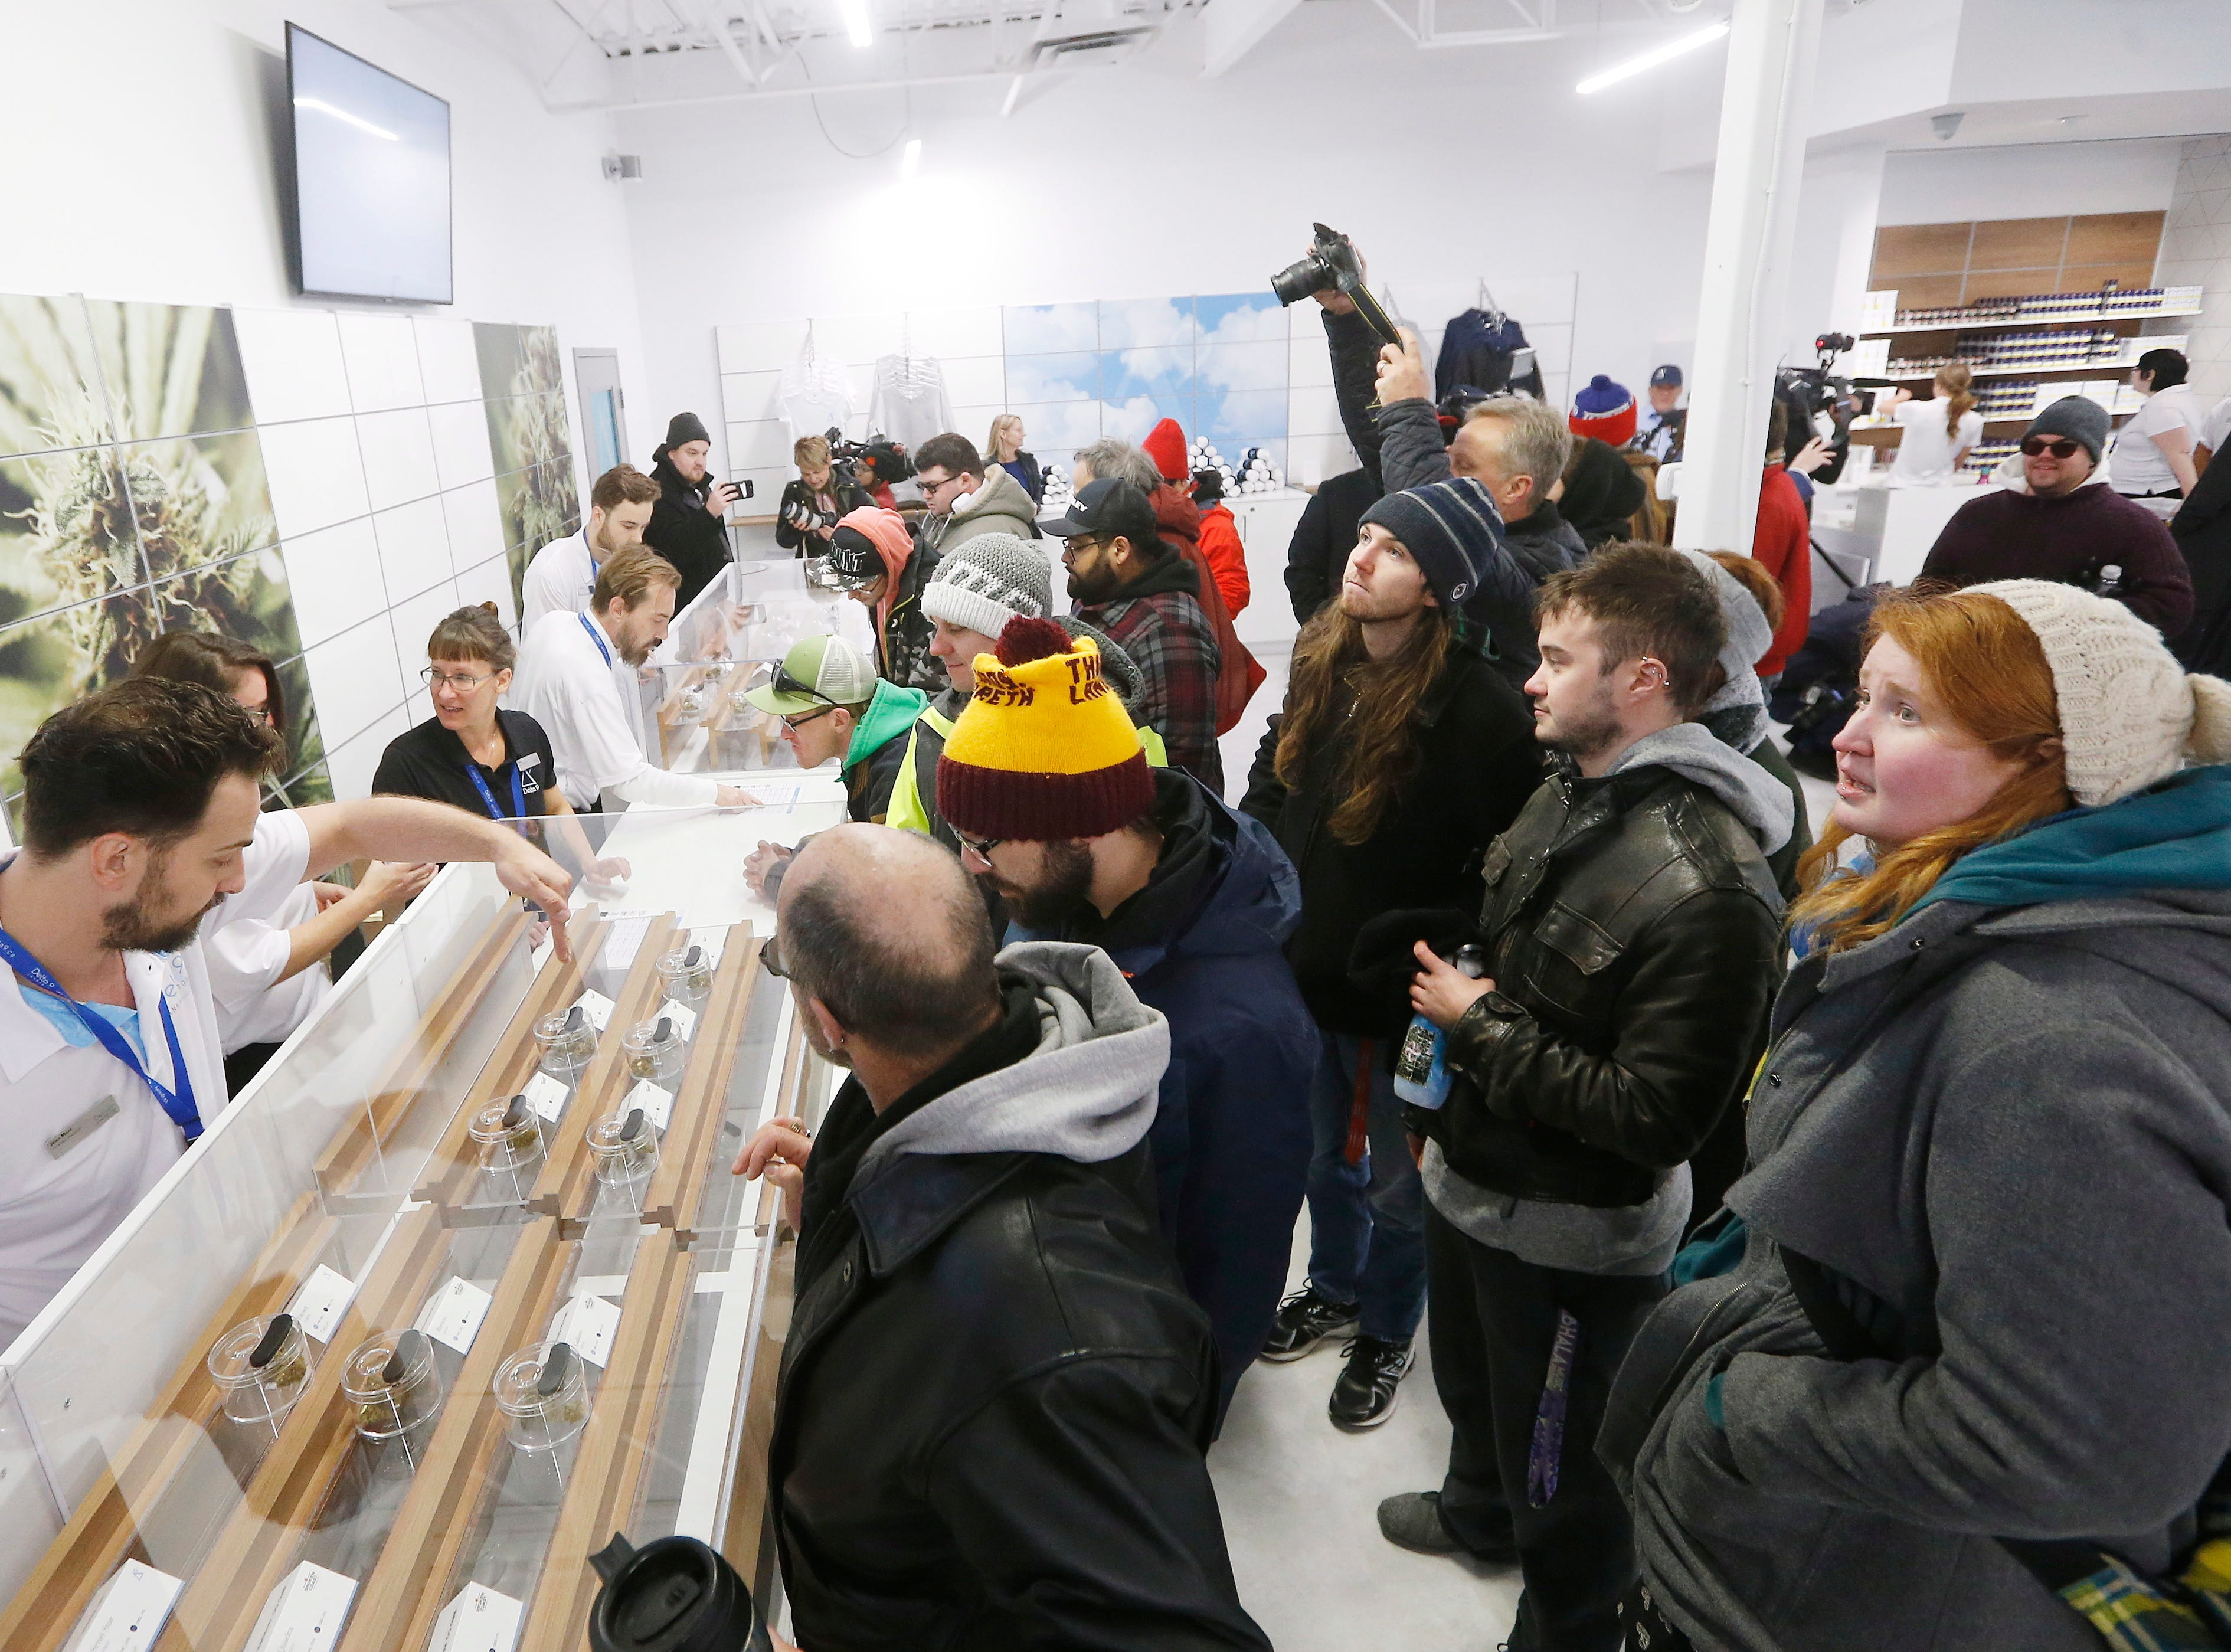 People check out the sample counter at a cannabis store in Winnipeg, Manitoba, on Wednesday, Oct. 17, 2018. Canada became the largest country with a legal national marijuana marketplace as sales began early Wednesday.